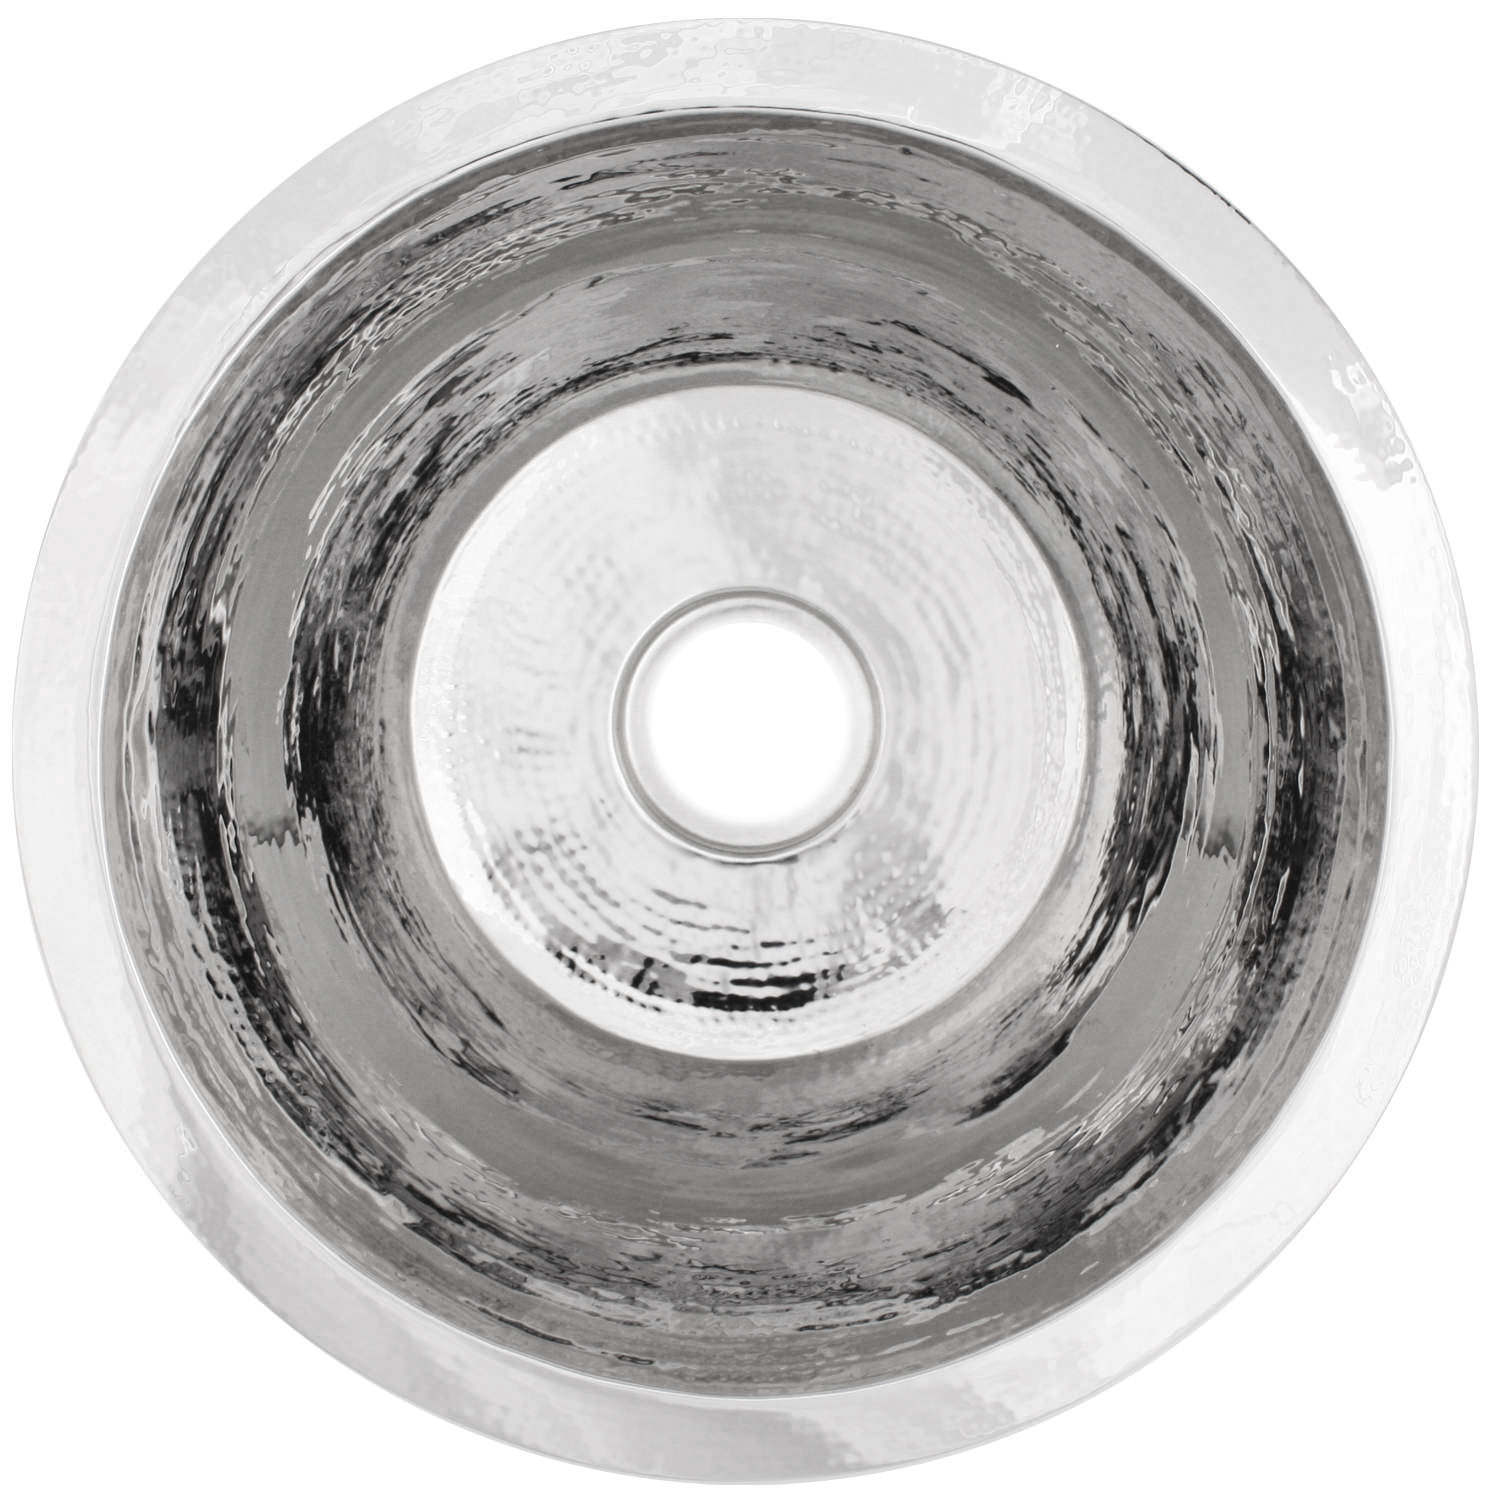 "Linkasink Kitchen Sinks - C019-PS Stainless Steel - Large Flat Round Sink - 3.5"" Drain - Polished"